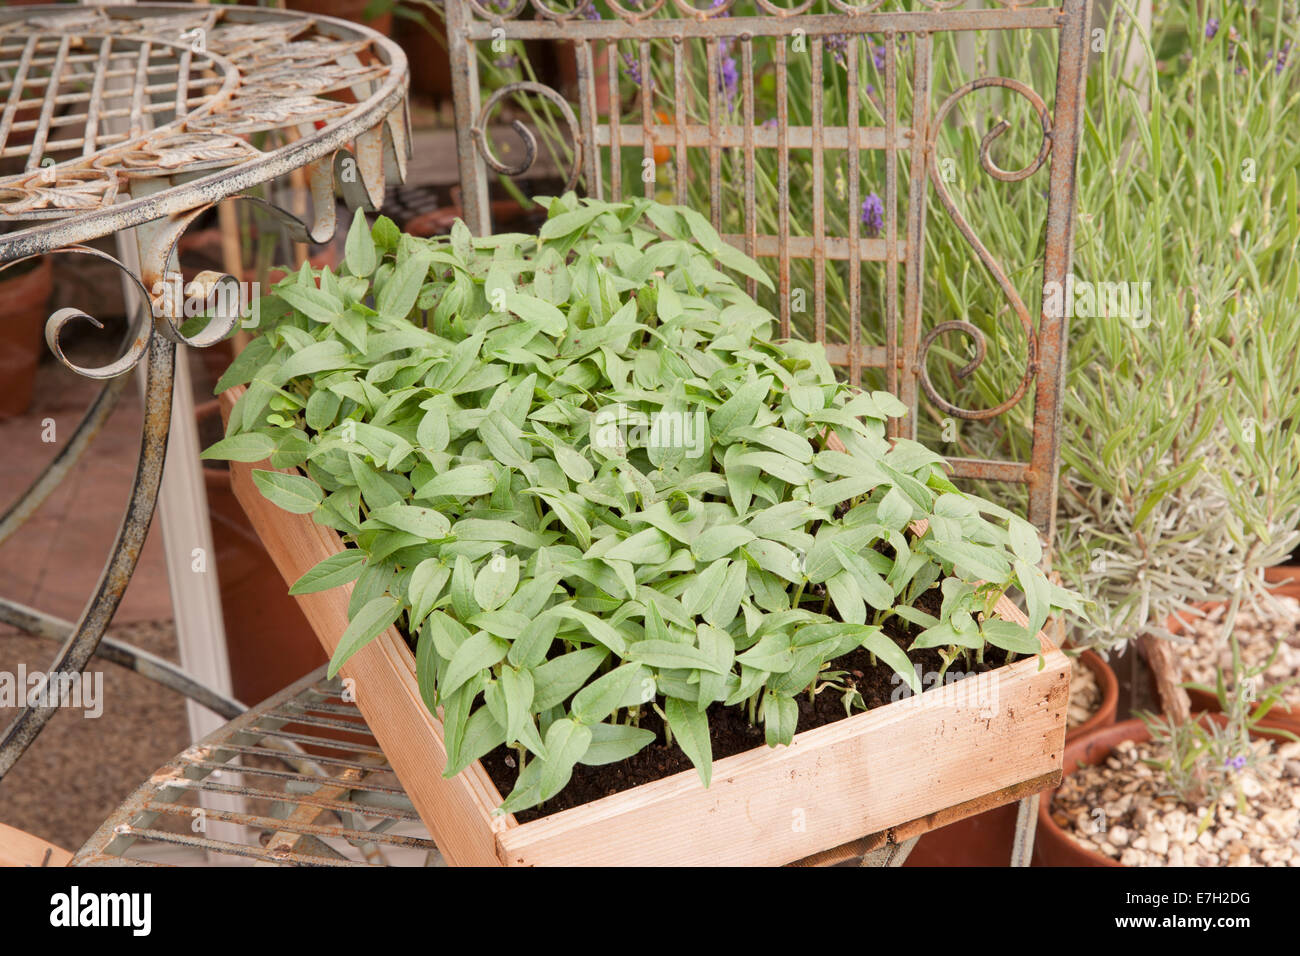 Sprouting mung bean grown for micro greens veg salad cut and come again Stock Photo